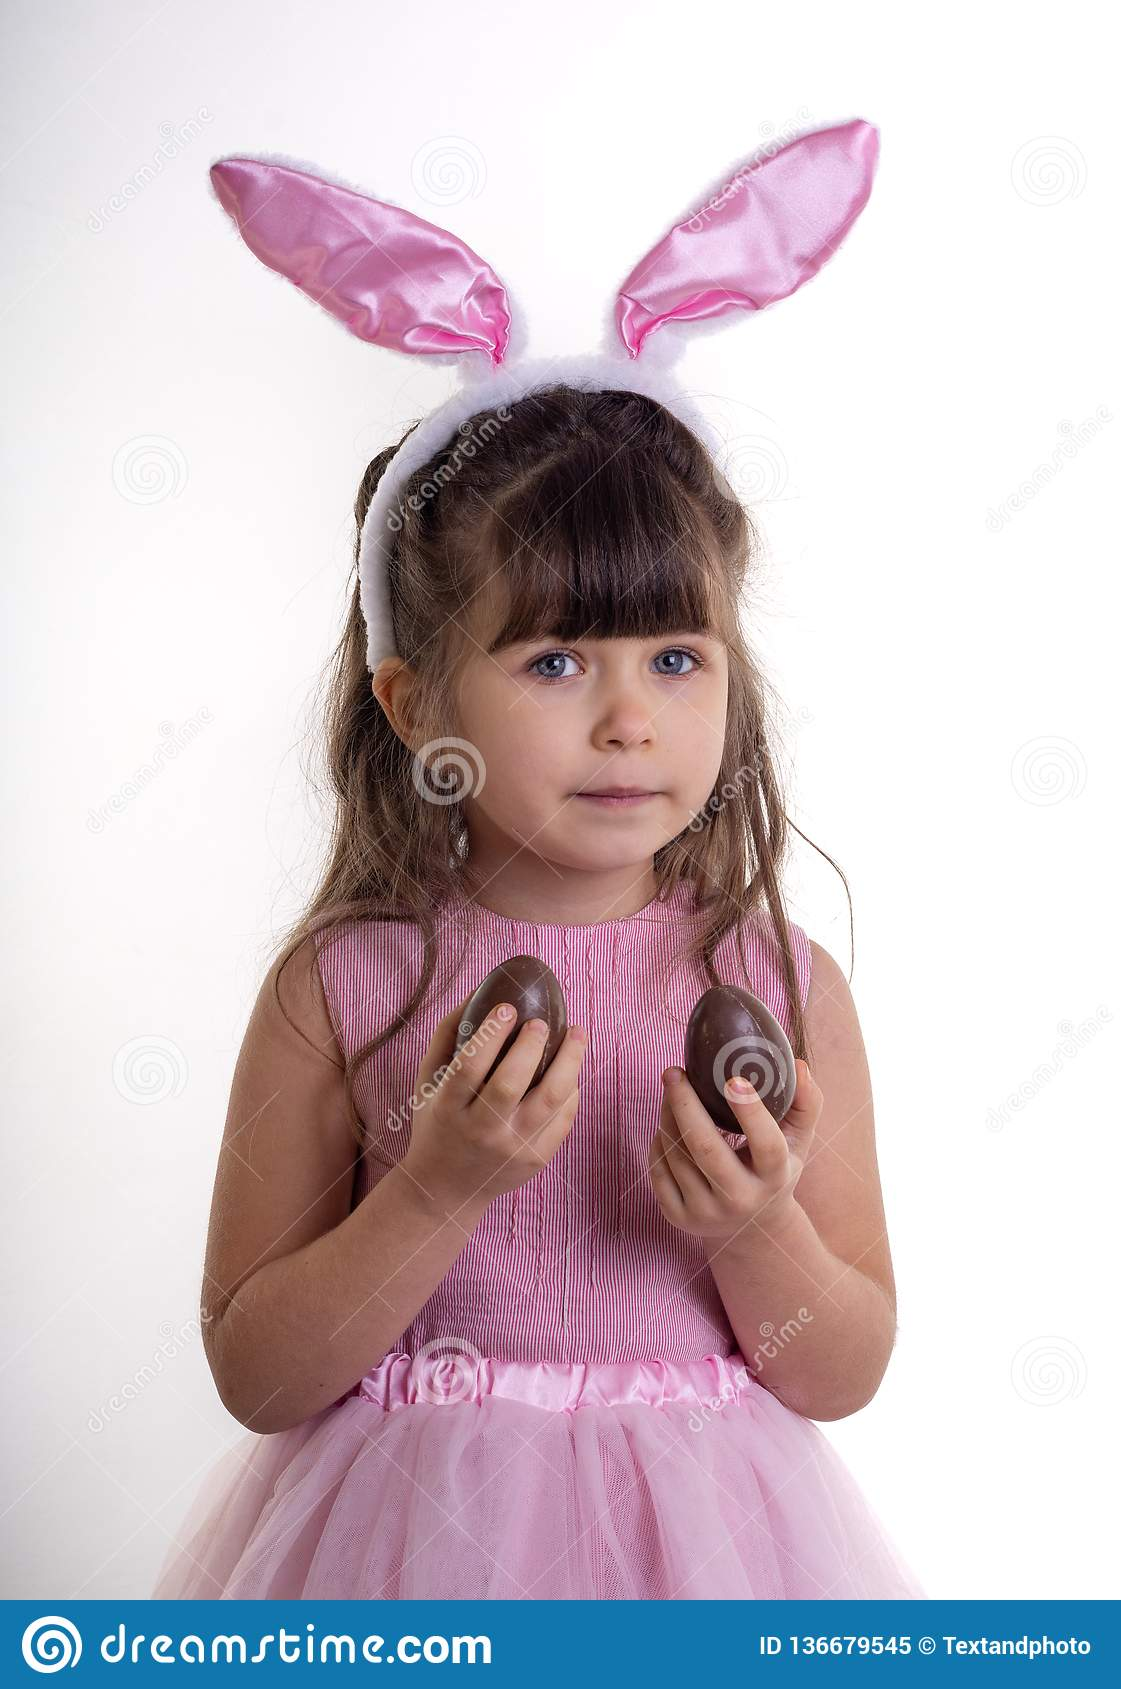 Happy easter! Child girl with bunny ears and chocolate eggs. Isolated on white.